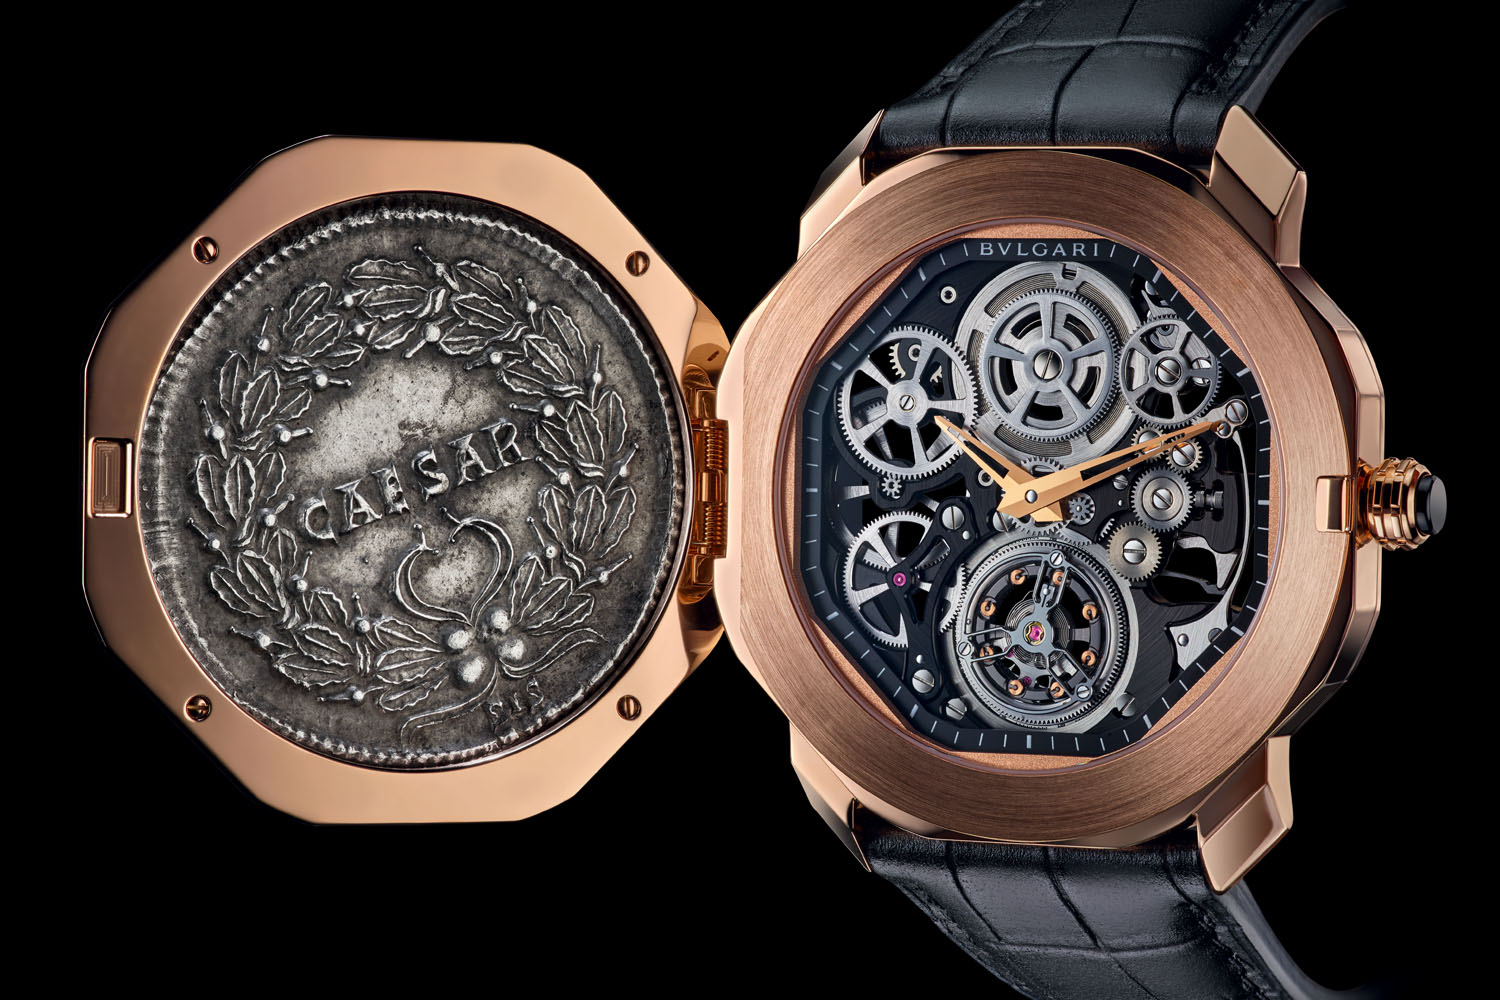 часы с монетой Bulgari Octo Finissimo Tourbillon Monete